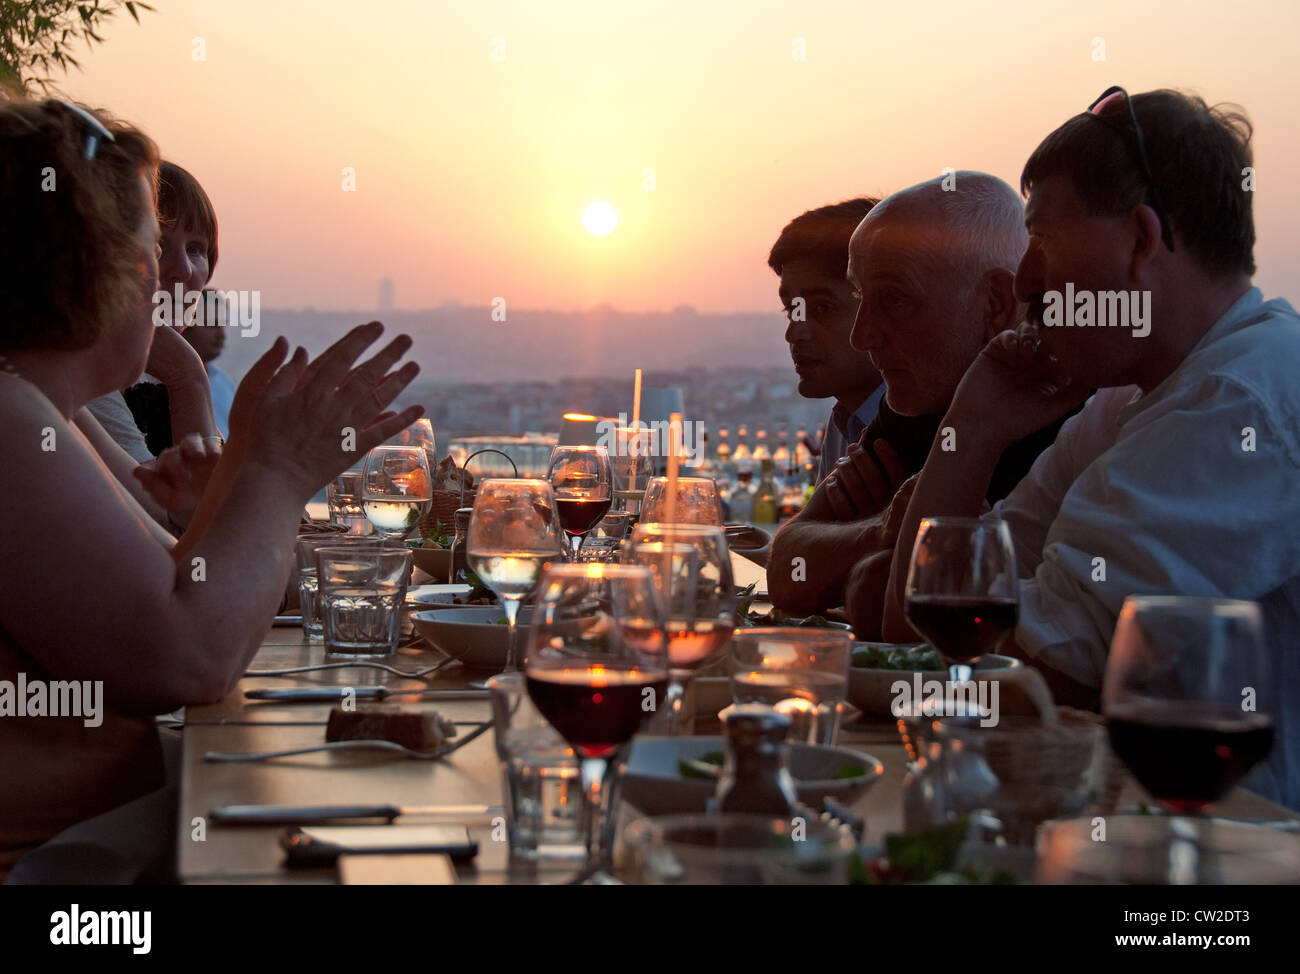 ISTANBUL, TURKEY. Sunset dining at Nu Teras rooftop bar and restaurant in the Beyoglu district of the city. 2012. - Stock Image